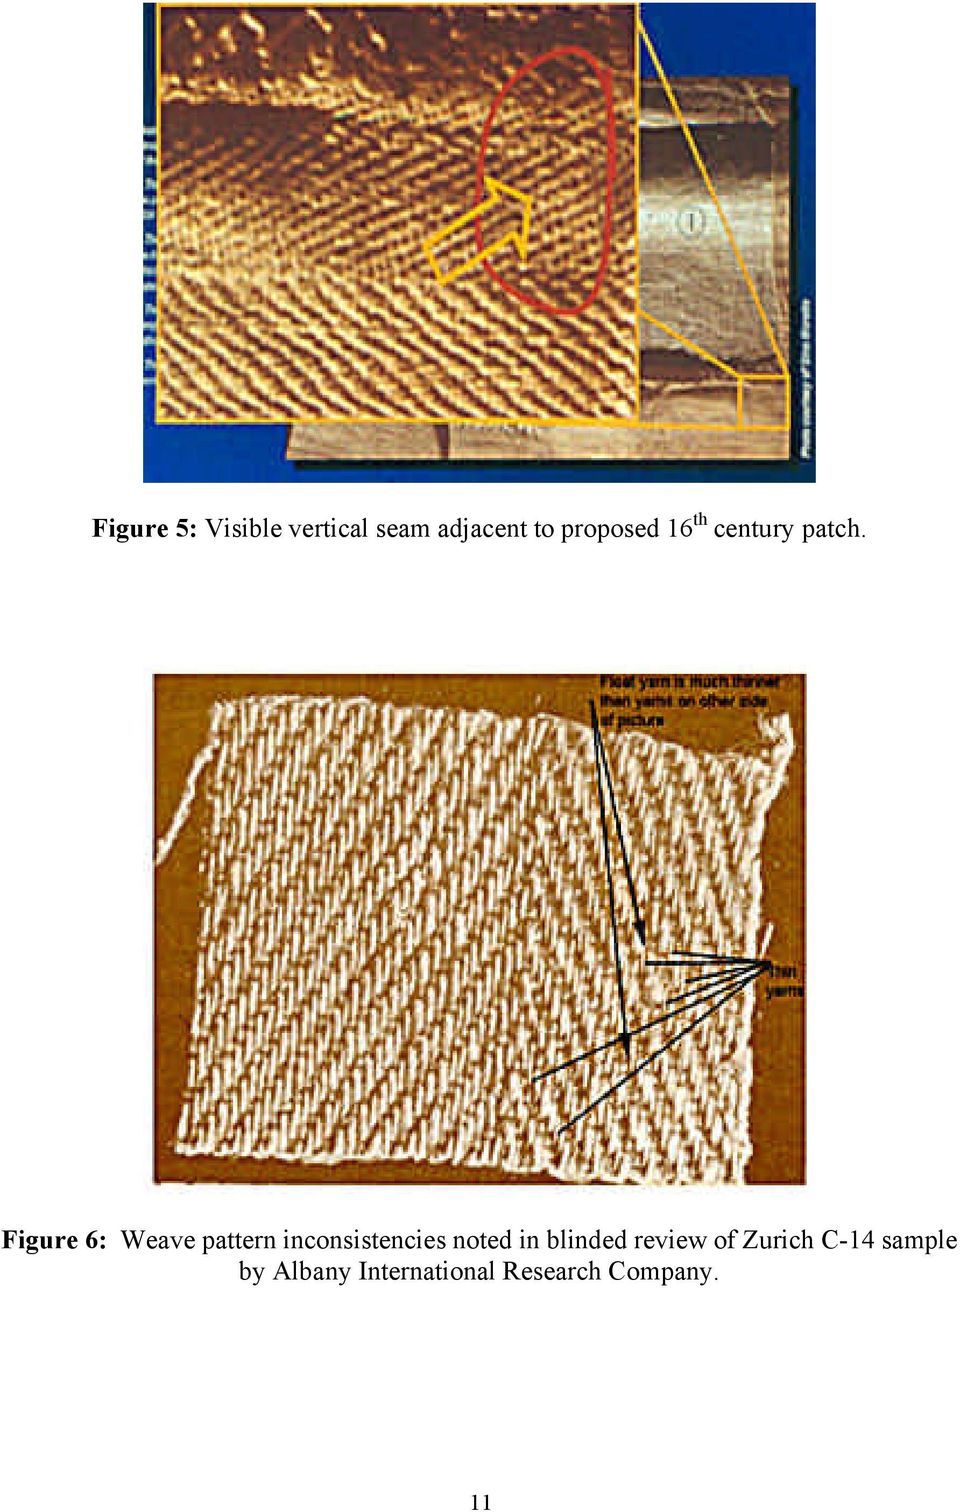 Figure 6: Weave pattern inconsistencies noted in